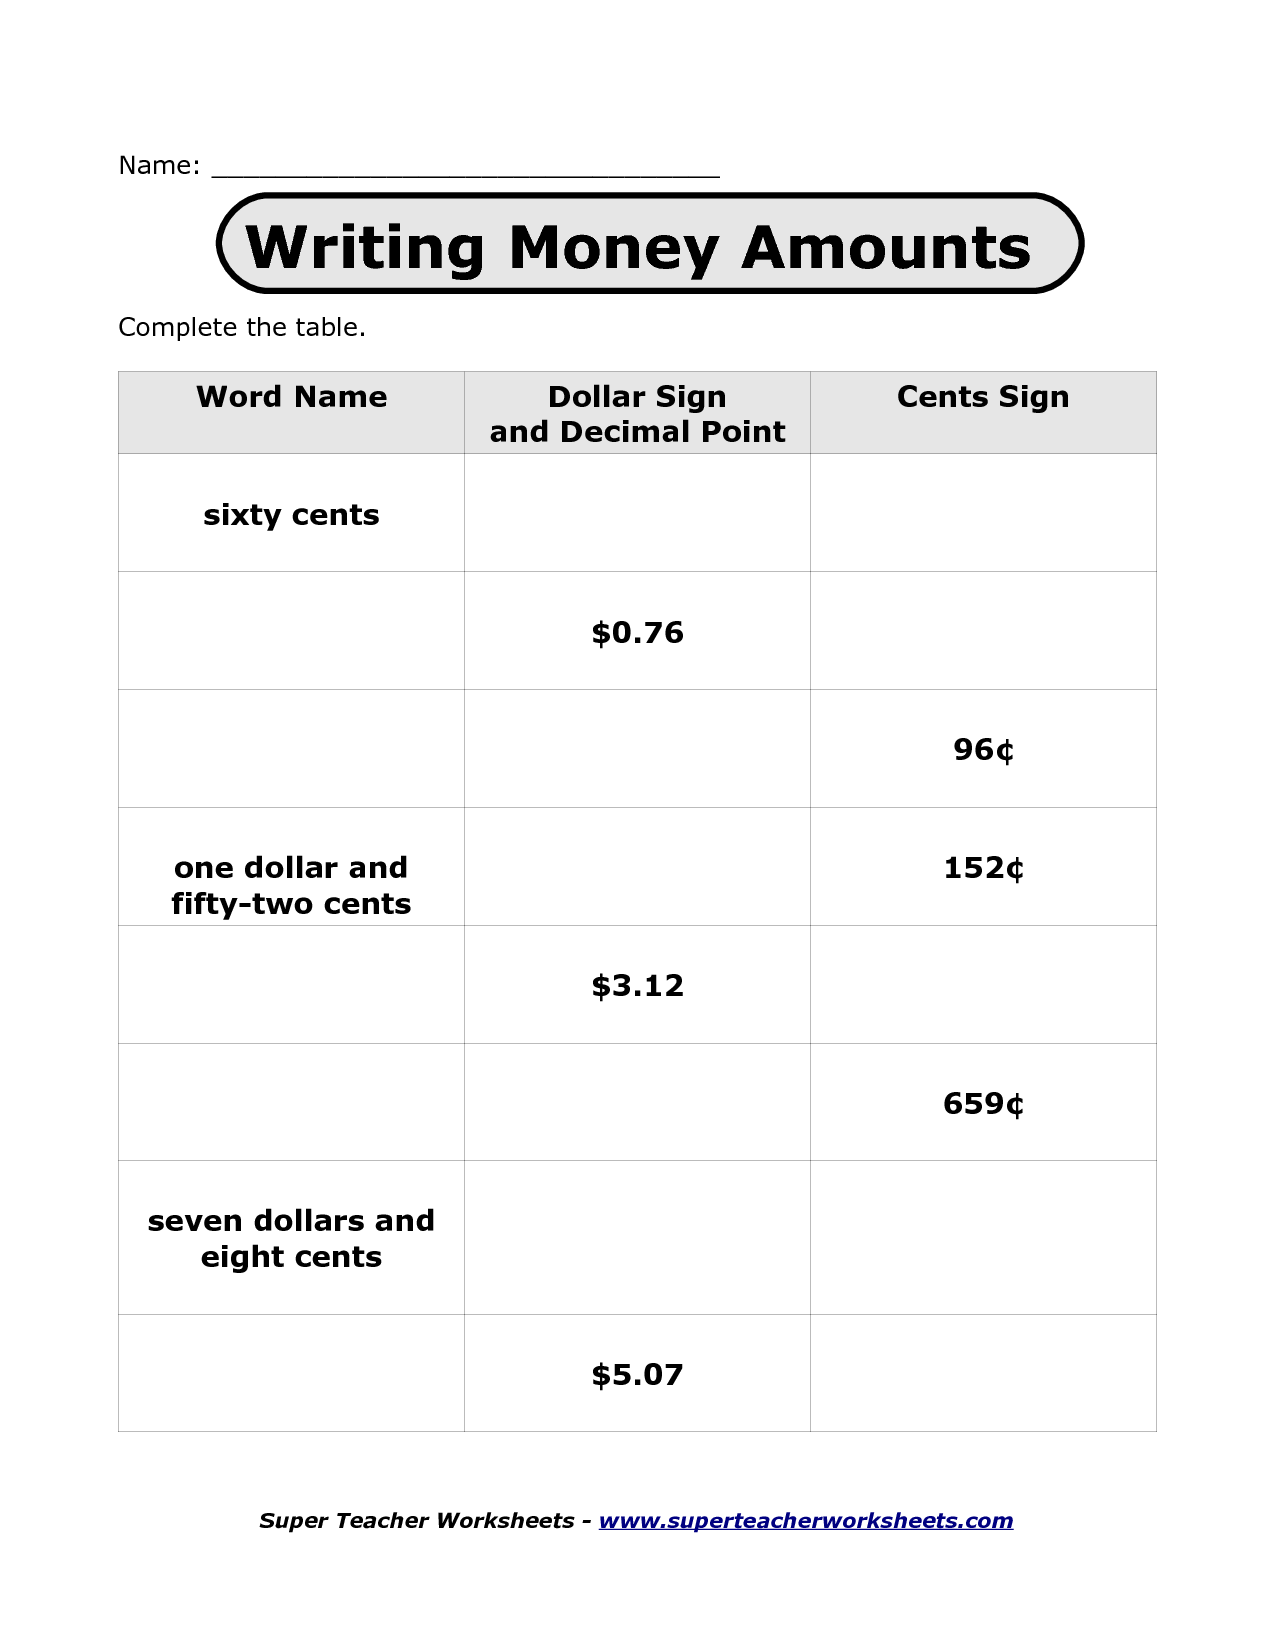 13 Best Images Of Super Teacher Worksheet Money